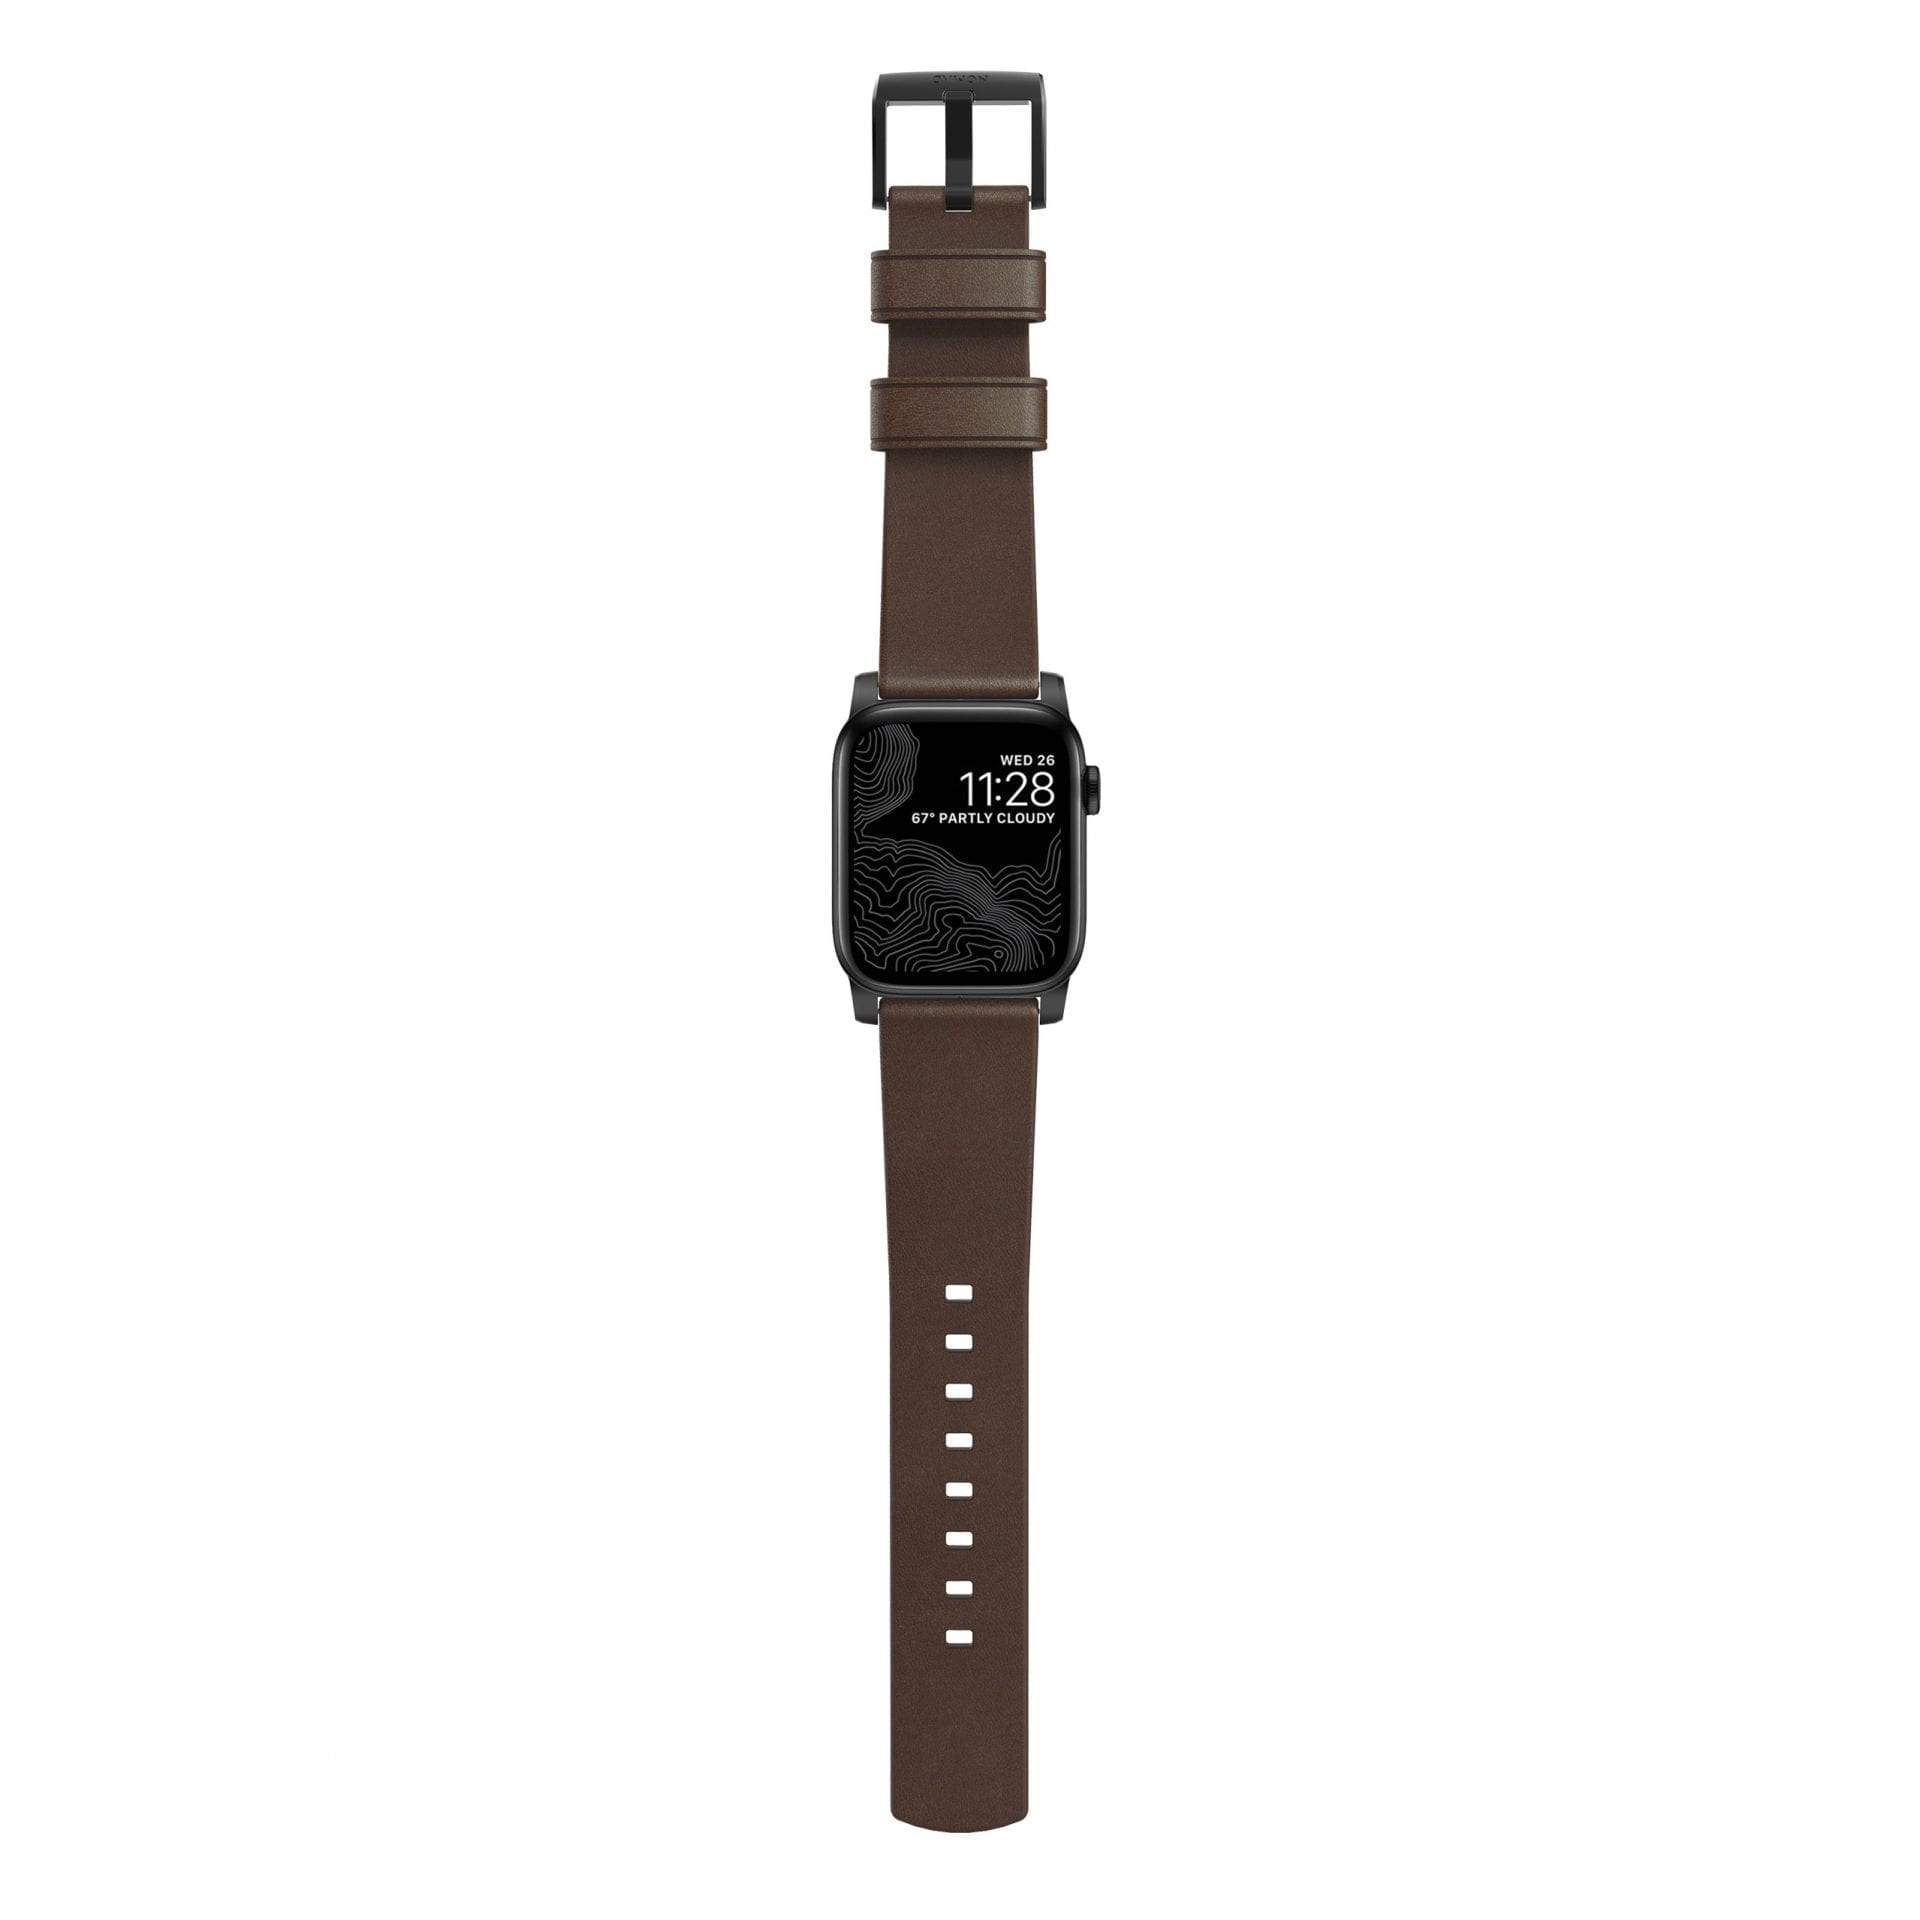 Nomad - Modern Strap | Black Hardware | Rustic Brown Leather - Netnaturshop